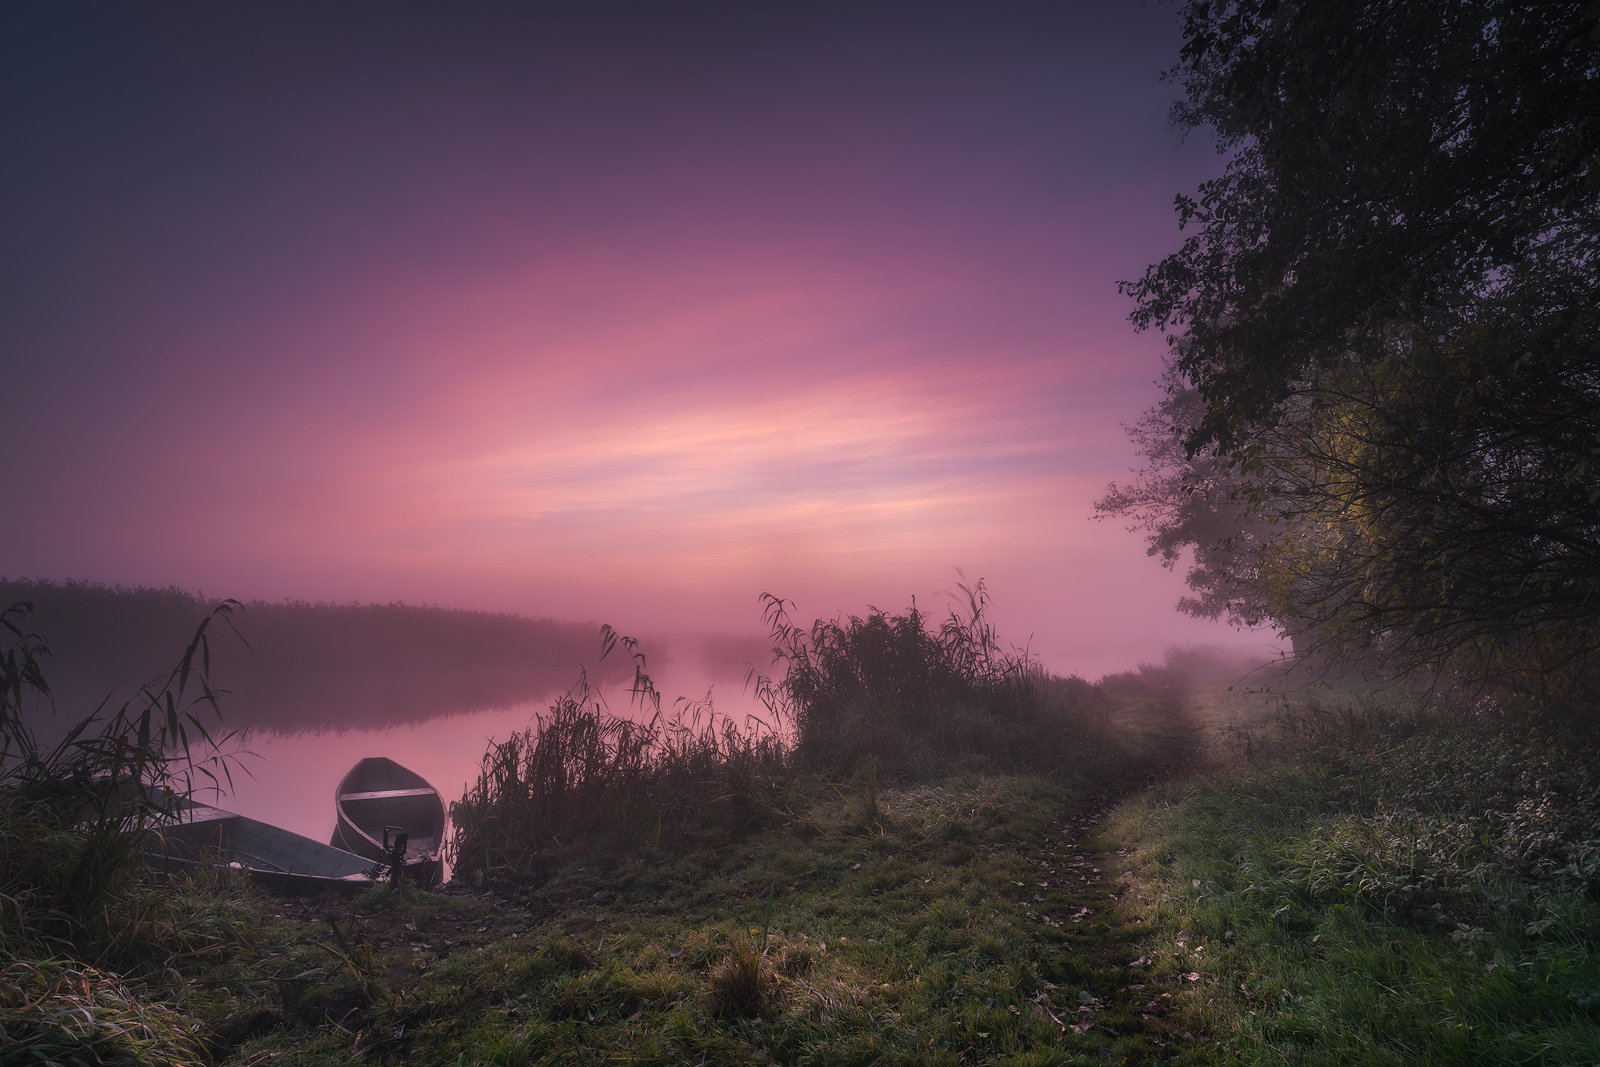 sky clouds fog river boats mist mood podlasie poland trees autumn, Maciej Warchoł